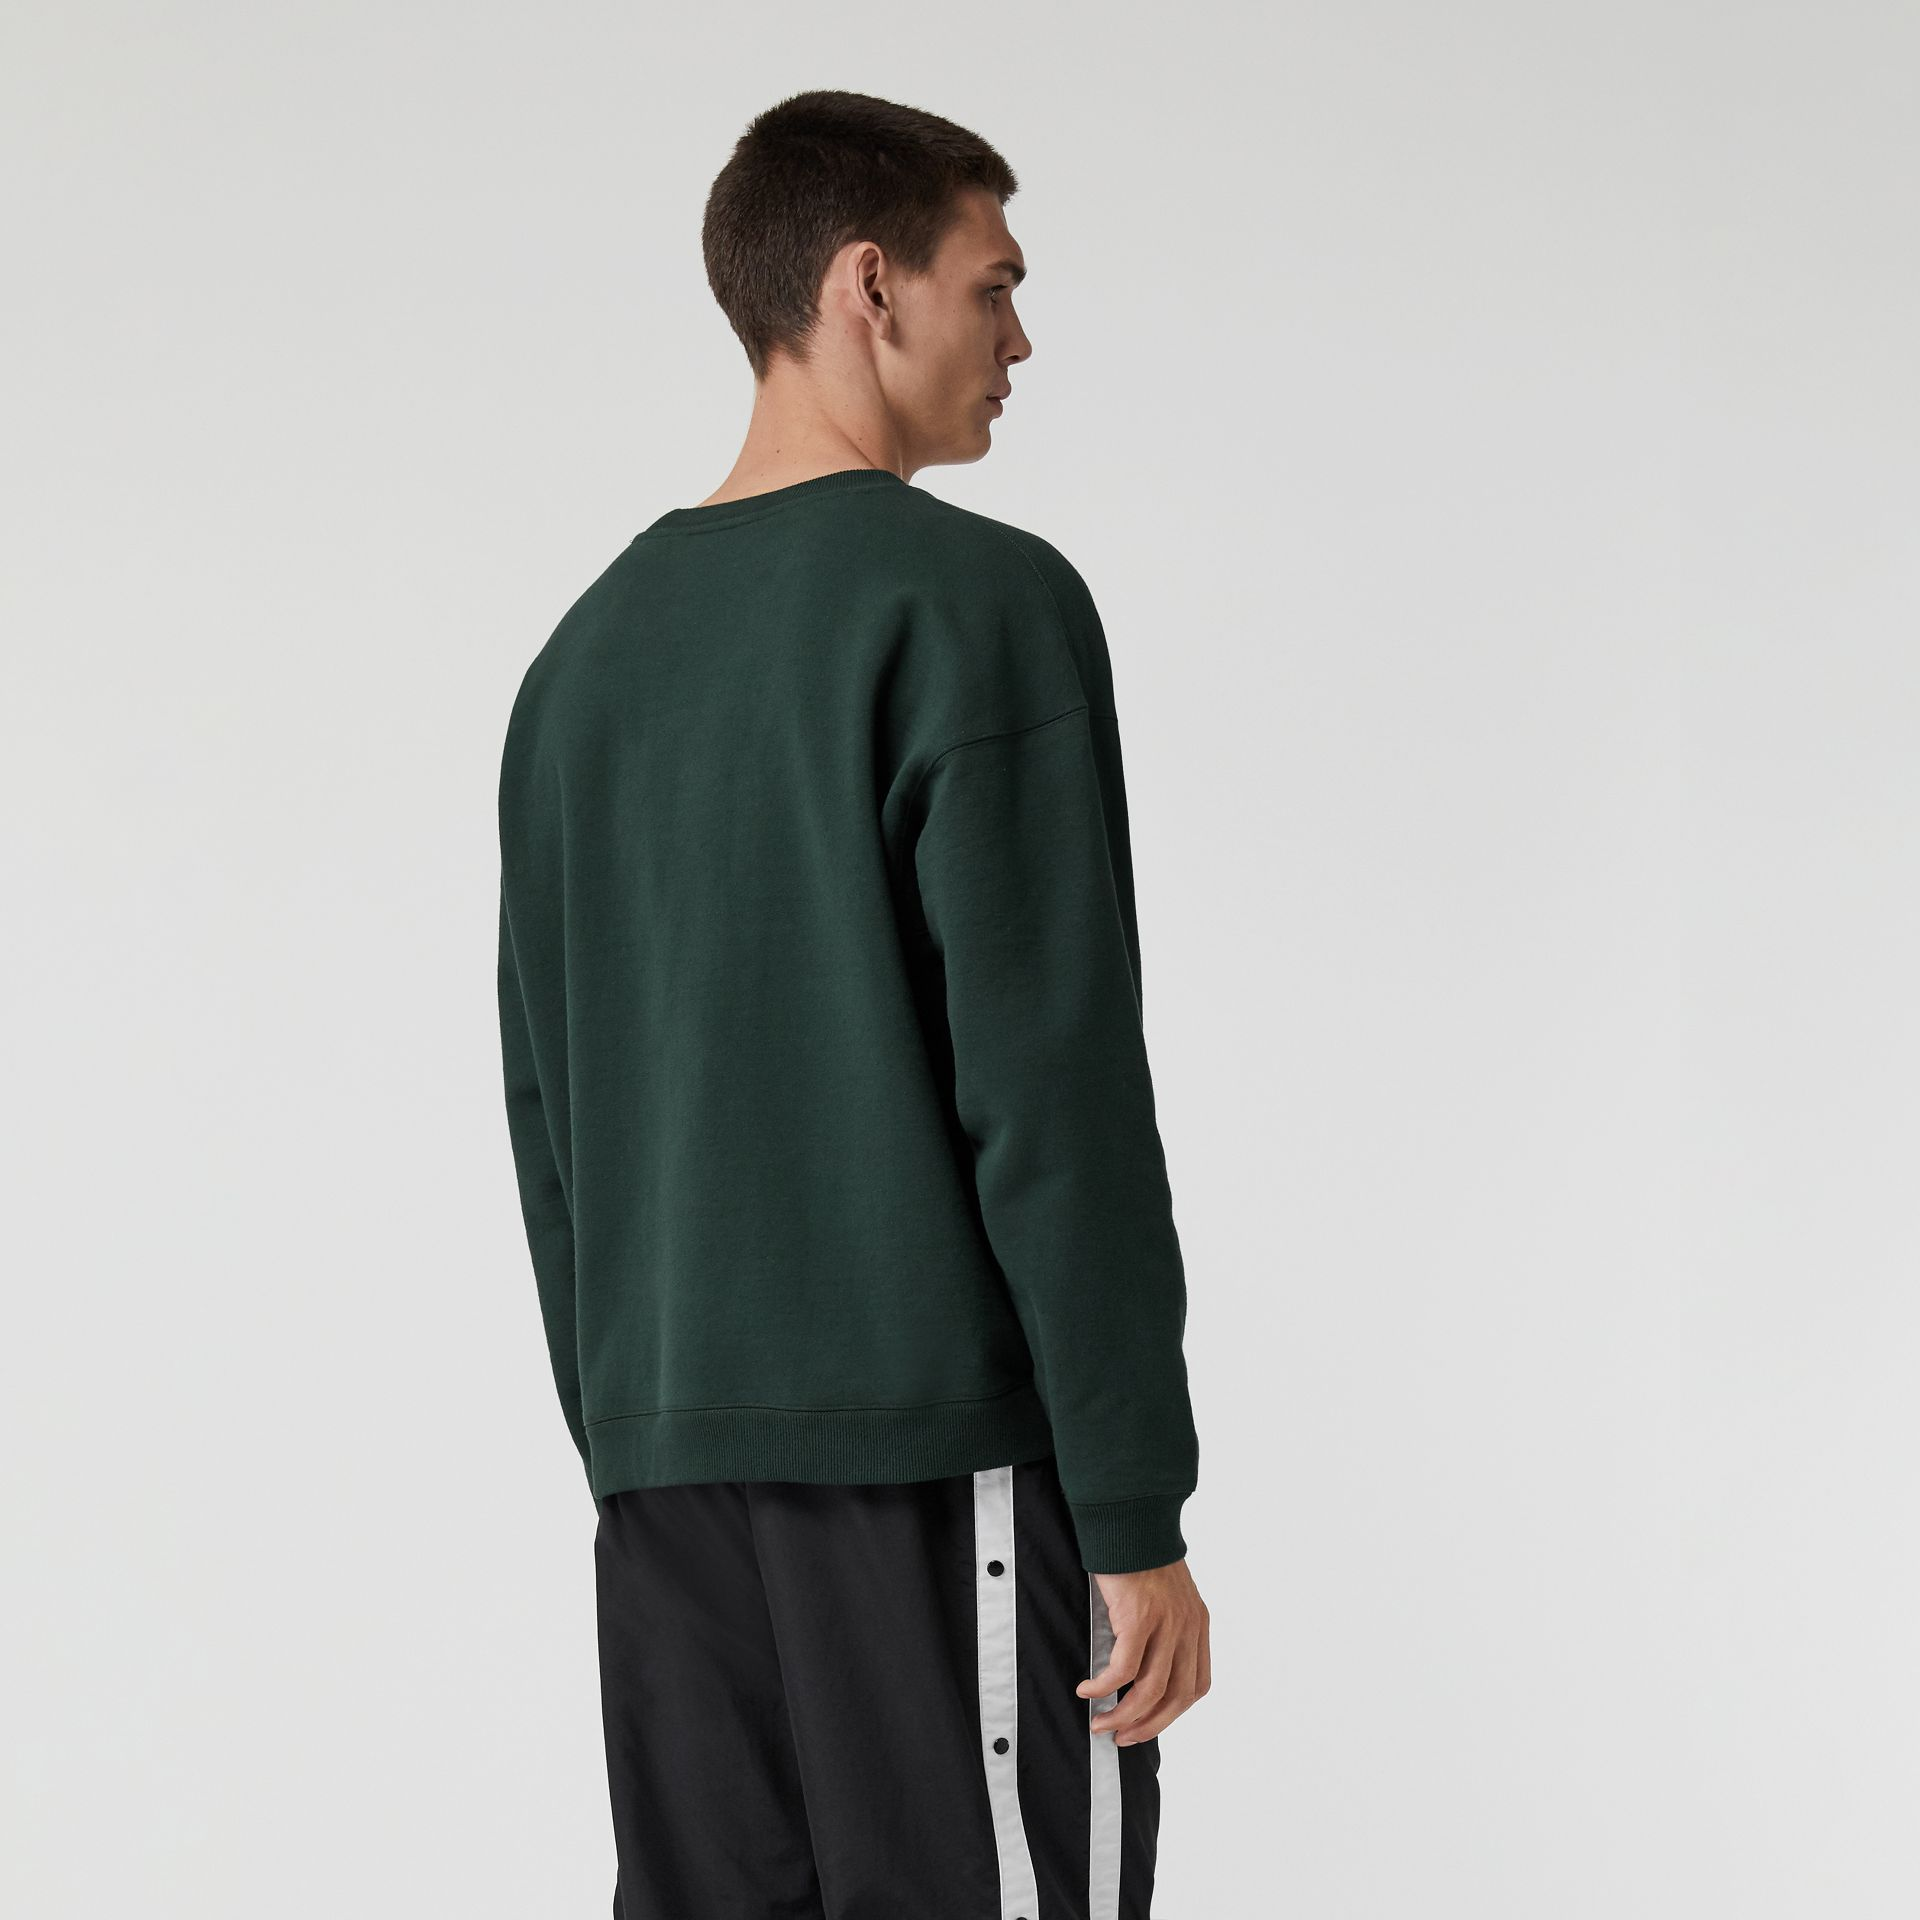 Embroidered Logo Jersey Sweatshirt in Forest Green - Men | Burberry United Kingdom - gallery image 2